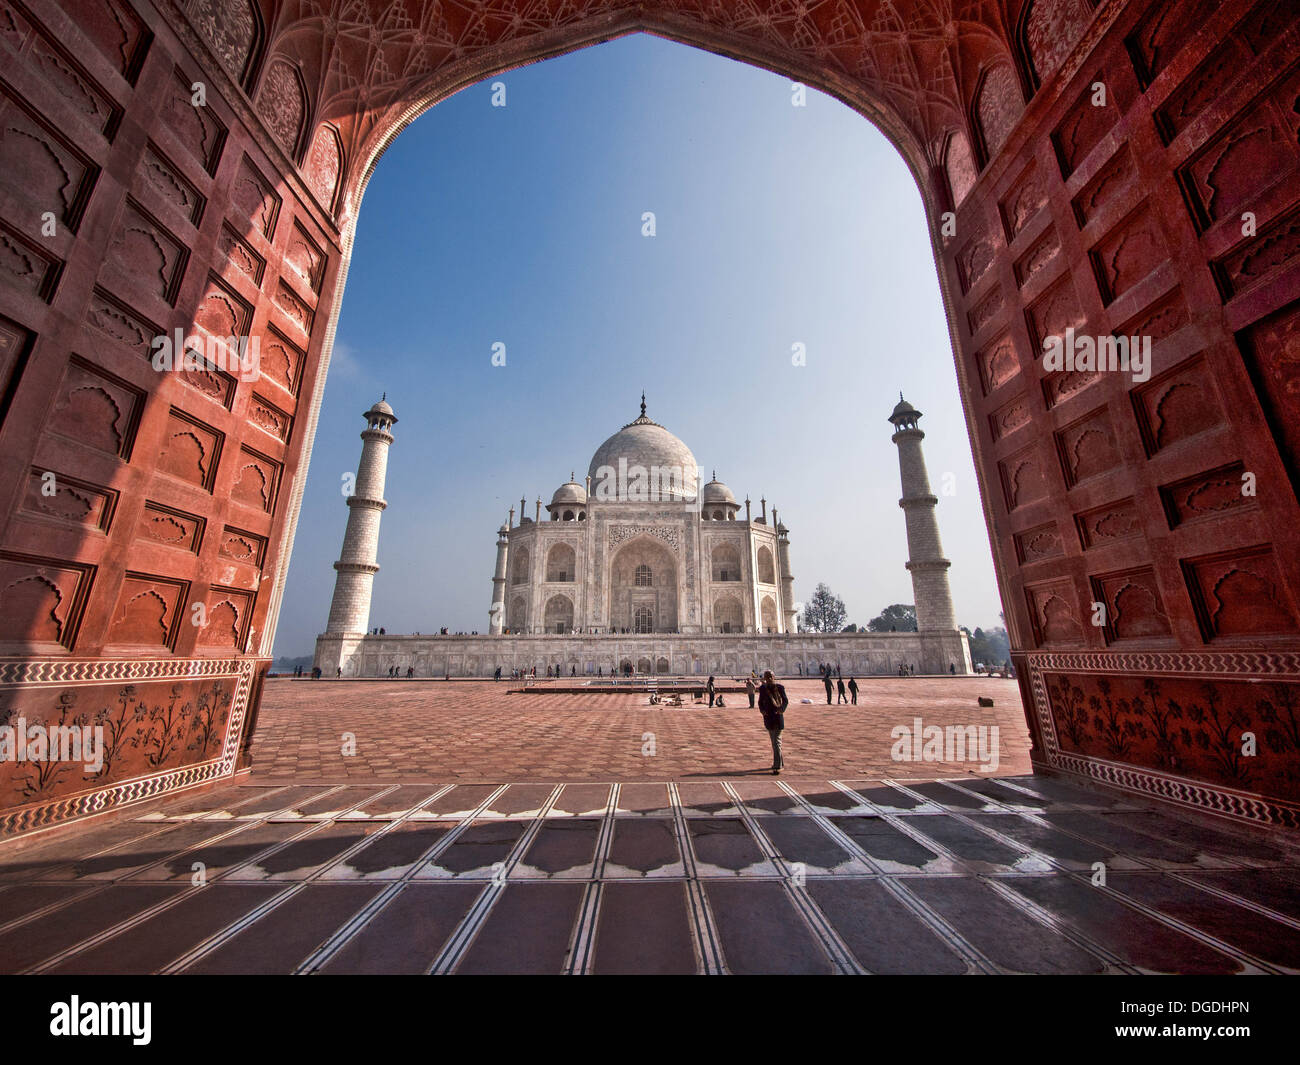 The Taj Mahal seen from mosque west of the mausoleum. - Stock Image